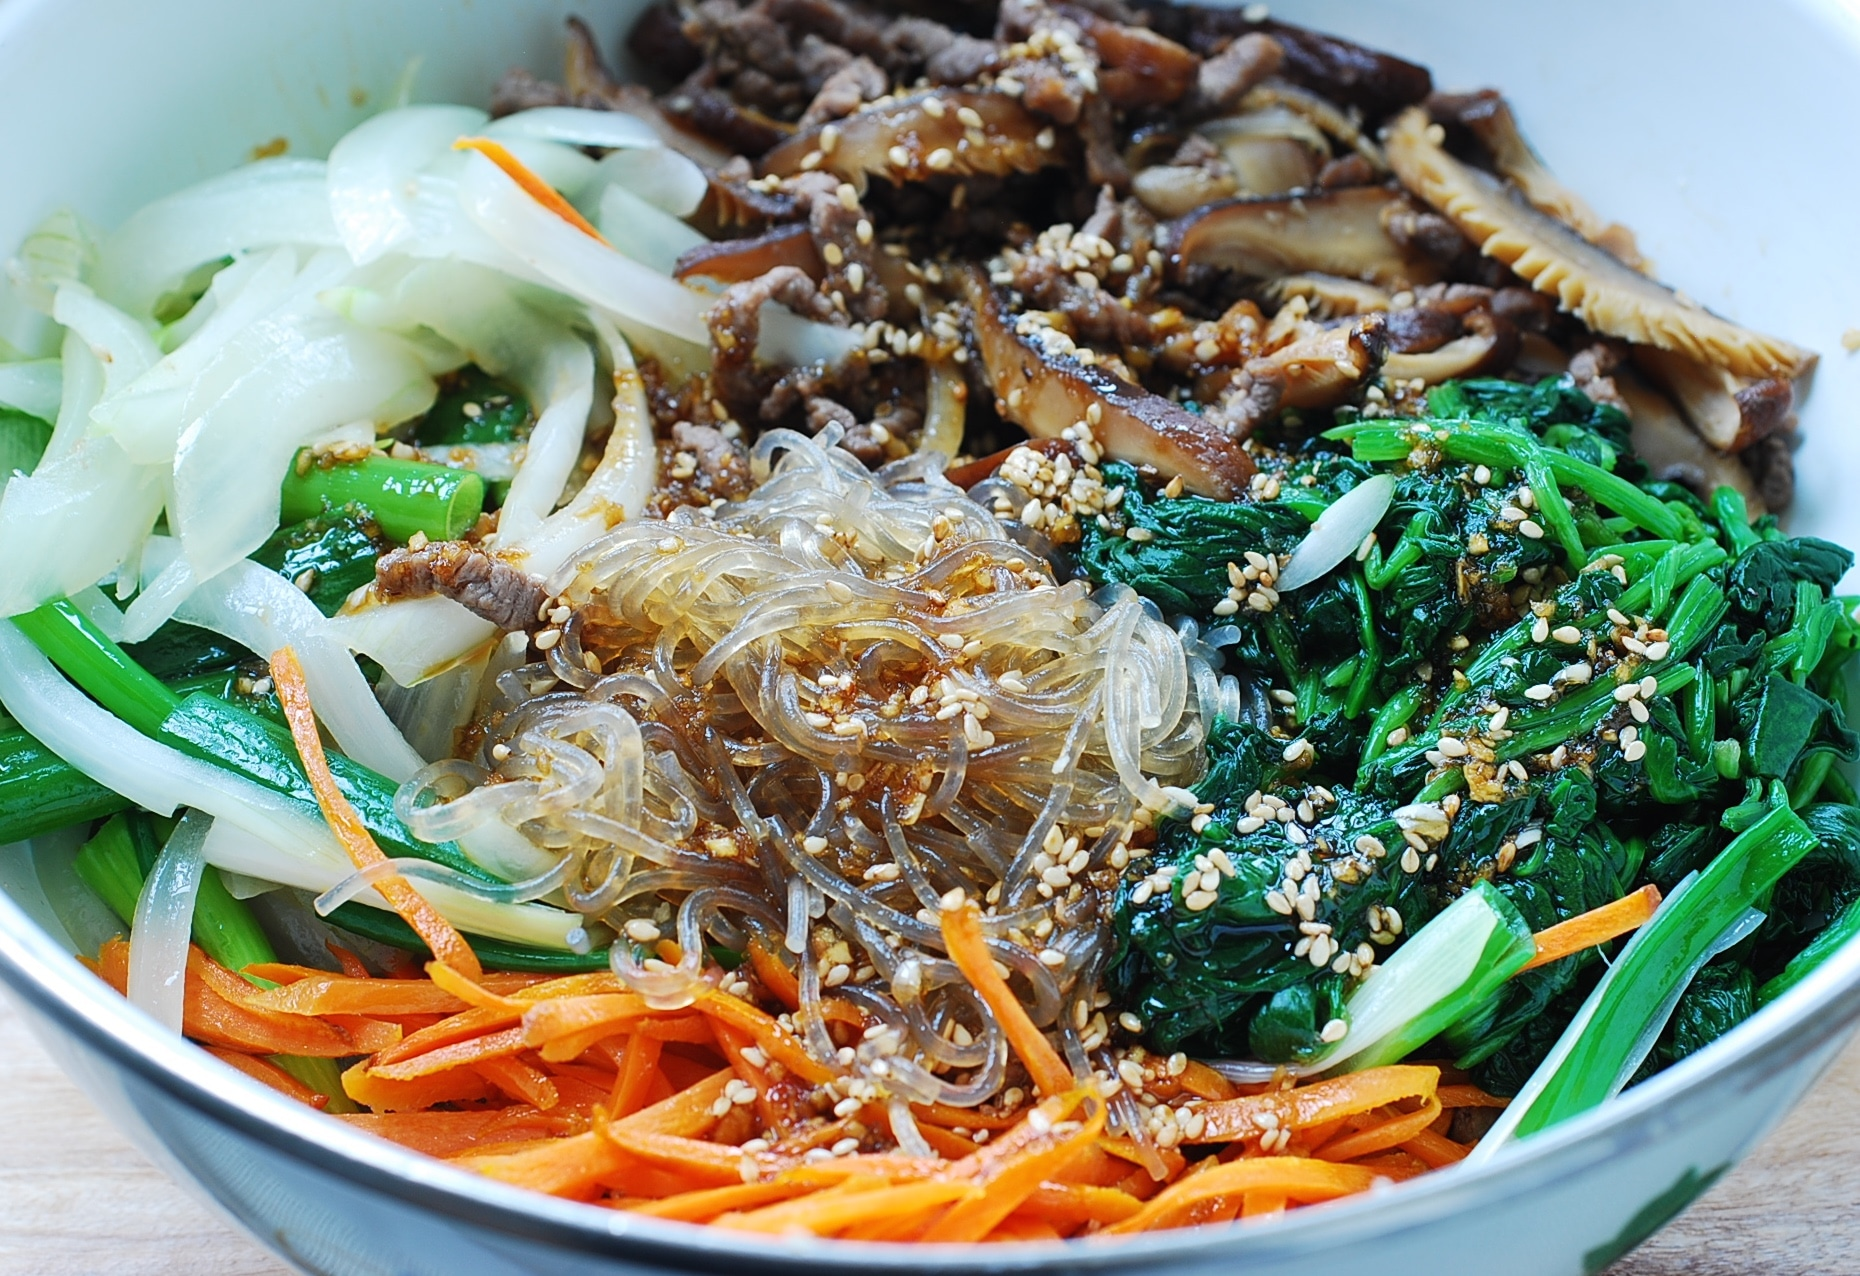 DSC 0984 - Japchae (Stir-Fried Starch Noodles with Beef and Vegetables)